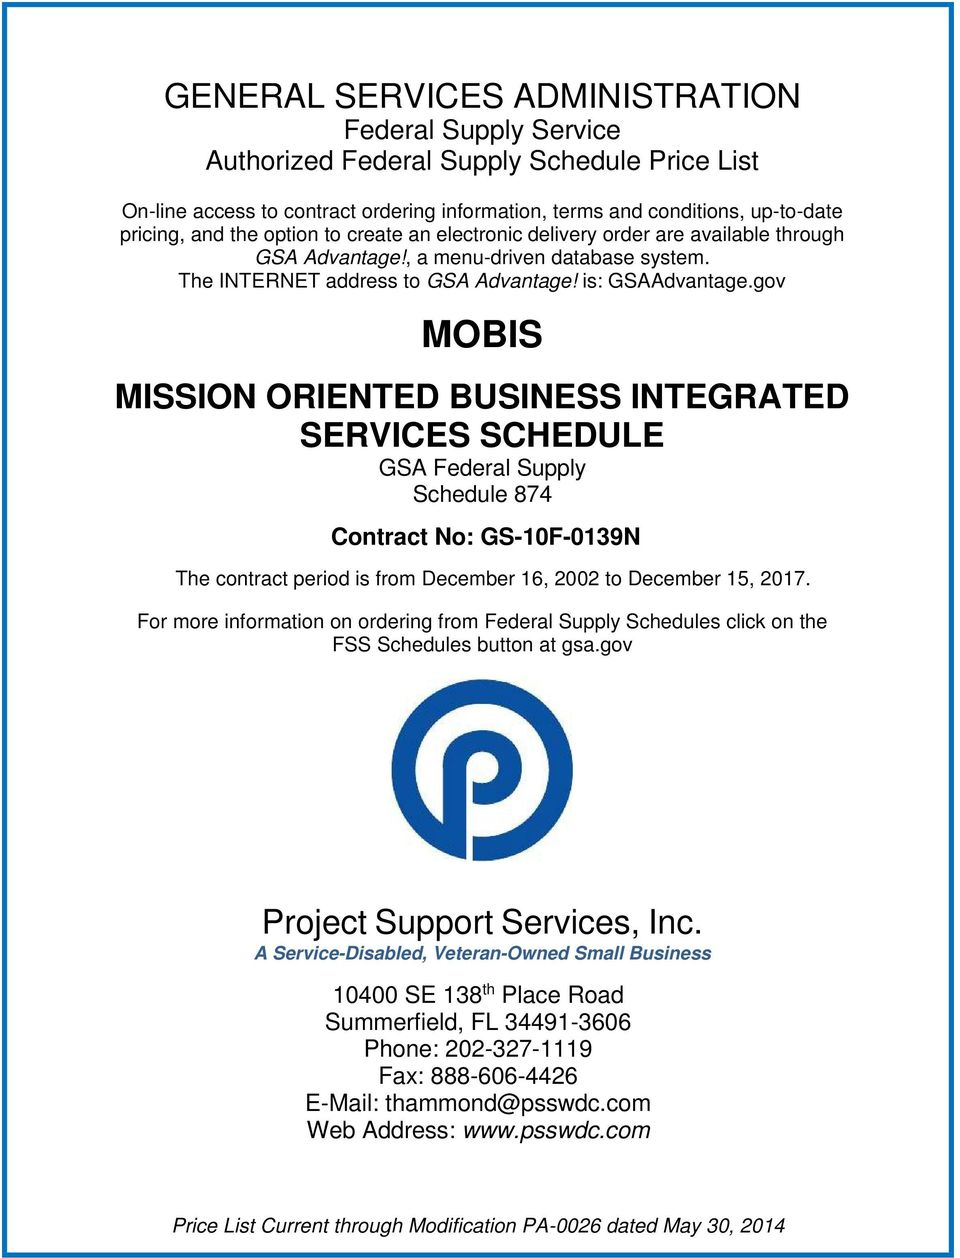 gov MOBIS MISSION ORIENTED BUSINESS INTEGRATED SERVICES SCHEDULE GSA Federal Supply Schedule 874 Contract No: GS-10F-0139N The contract period is from December 16, 2002 to December 15, 2017.